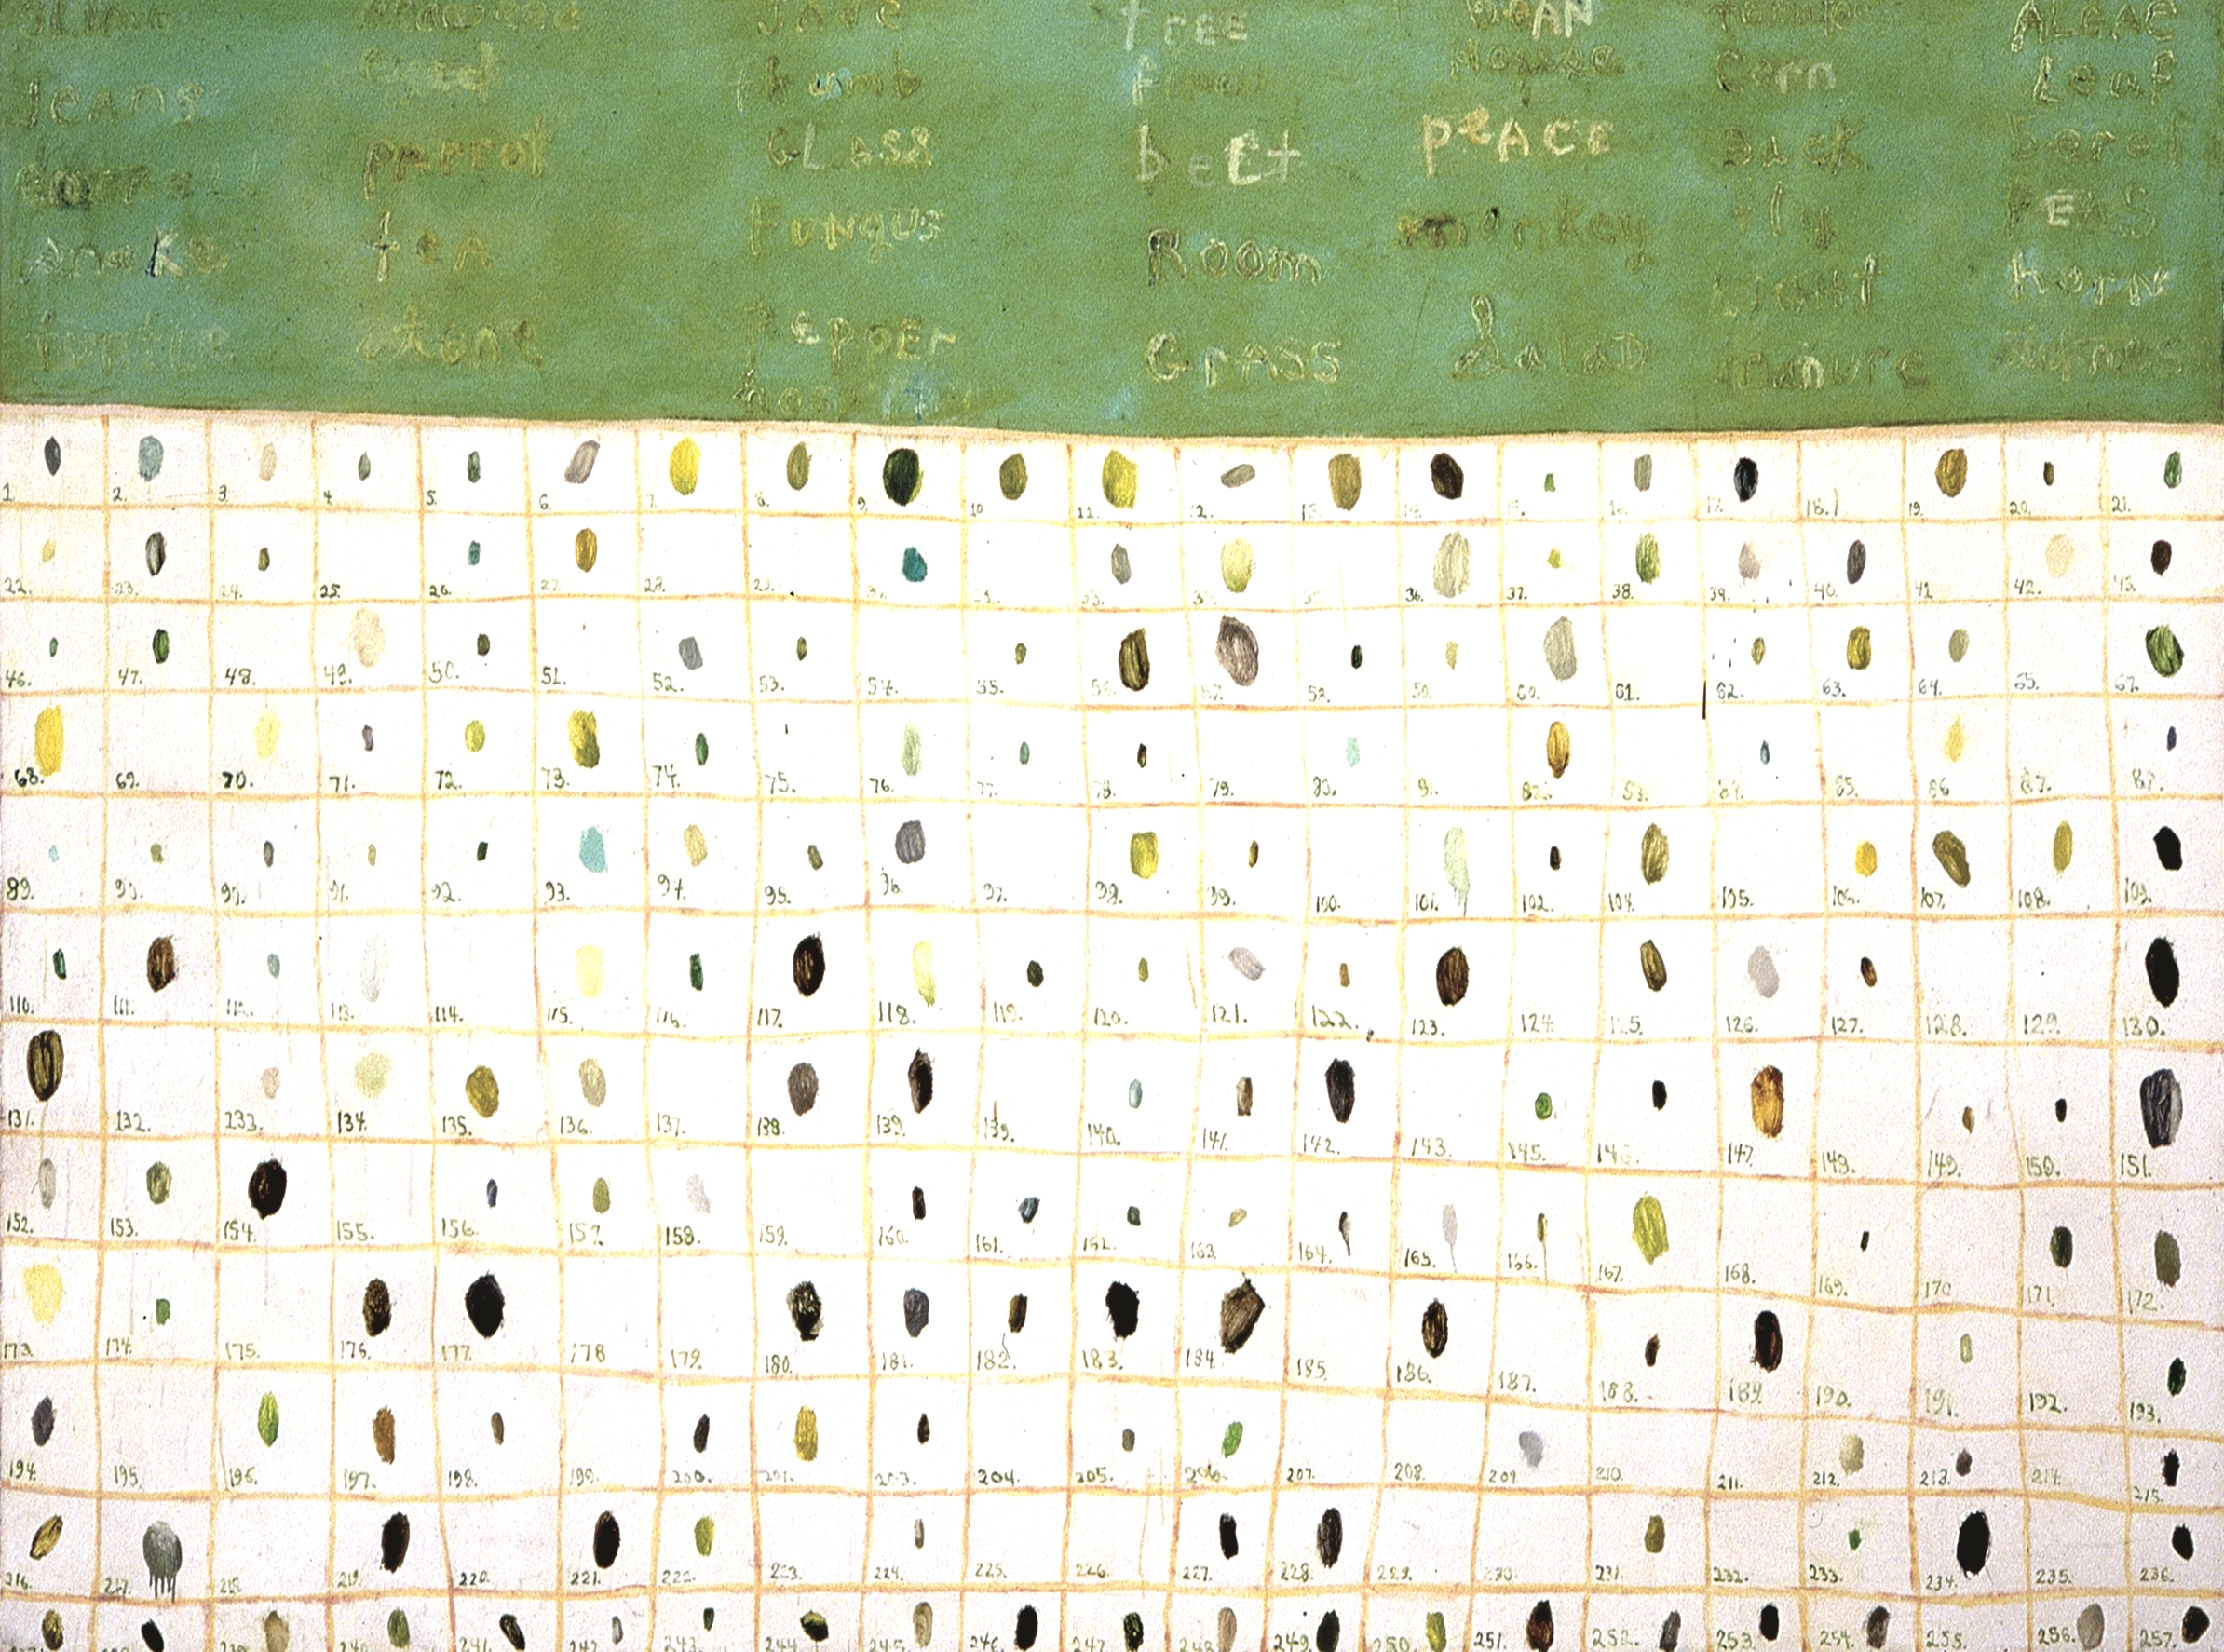 Squeak Carnwath   Things Green , 1995 oil and alkyd on canvas 76 x 102 inches 193 x 259.1 cm